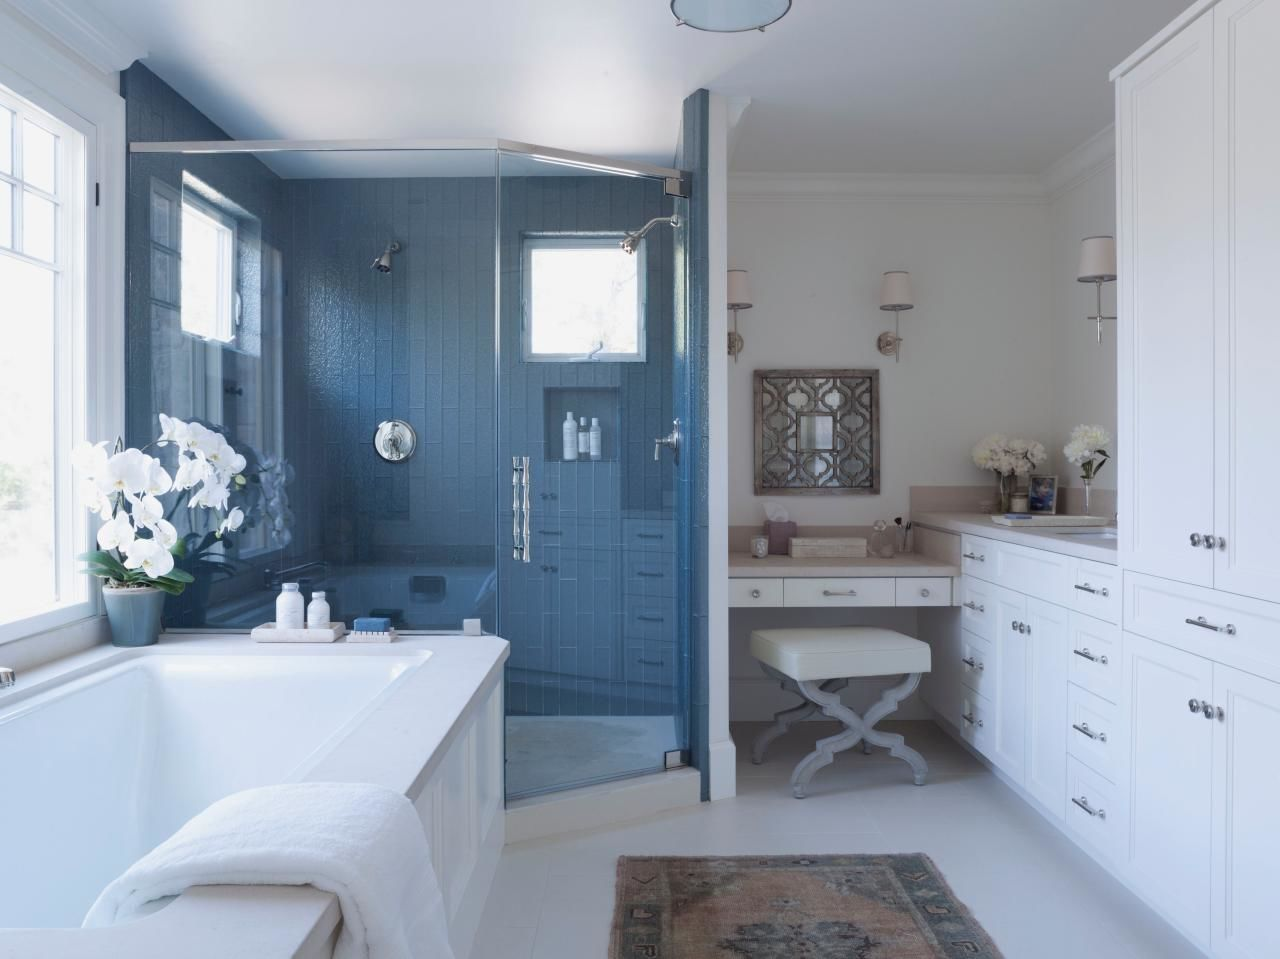 new how to redo bathroom collection-Amazing How to Redo Bathroom Pattern